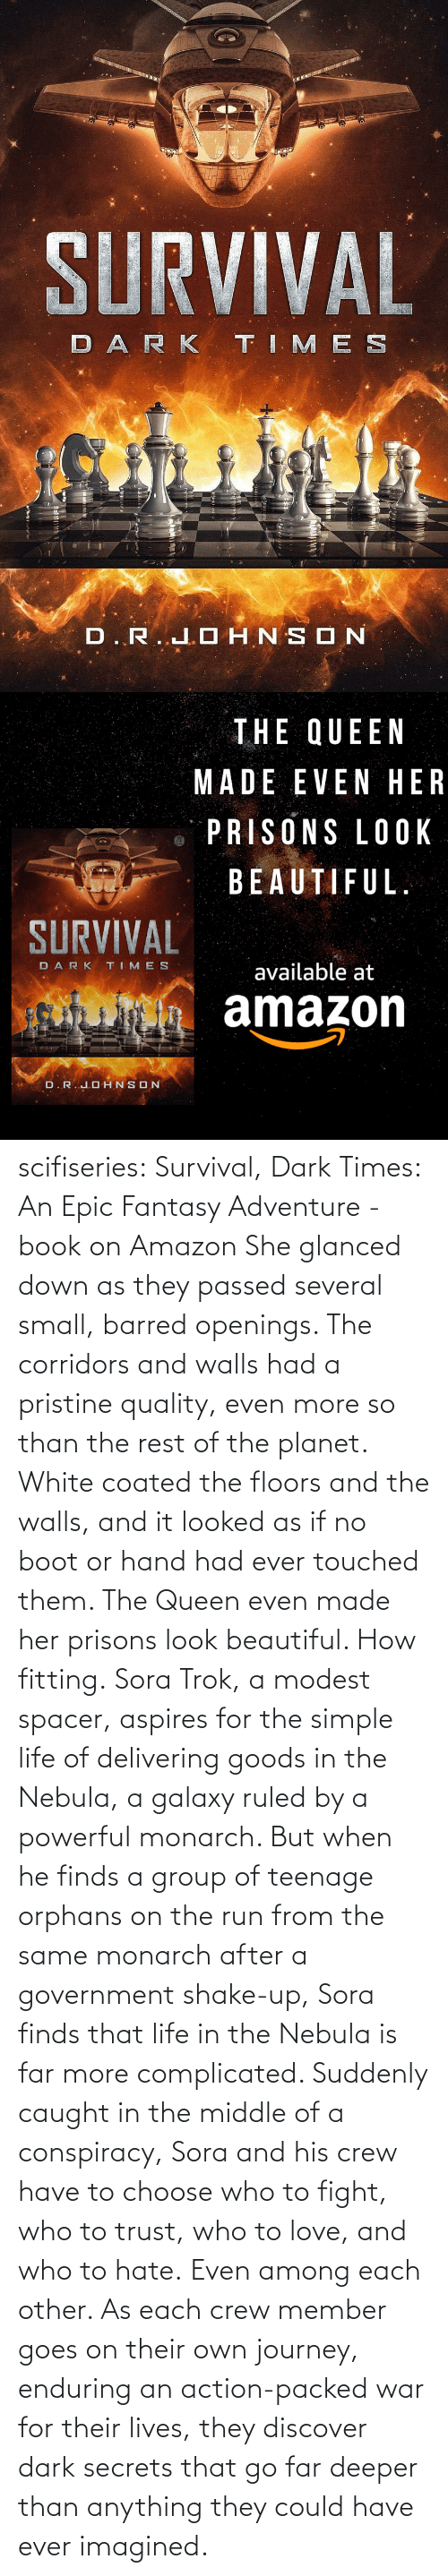 Had: scifiseries: Survival, Dark Times: An Epic Fantasy Adventure - book on Amazon  She glanced down as they  passed several small, barred openings. The corridors and walls had a  pristine quality, even more so than the rest of the planet. White coated  the floors and the walls, and it looked as if no boot or hand had ever  touched them.  The Queen even made her prisons look beautiful.  How fitting. Sora  Trok, a modest spacer, aspires for the simple life of delivering goods  in the Nebula, a galaxy ruled by a powerful monarch. But when he finds a  group of teenage orphans on the run from the same monarch after a  government shake-up, Sora finds that life in the Nebula is far more complicated.  Suddenly  caught in the middle of a conspiracy, Sora and his crew have to choose  who to fight, who to trust, who to love, and who to hate. Even among each other.  As  each crew member goes on their own journey, enduring an action-packed  war for their lives, they discover dark secrets that go far deeper than  anything they could have ever imagined.